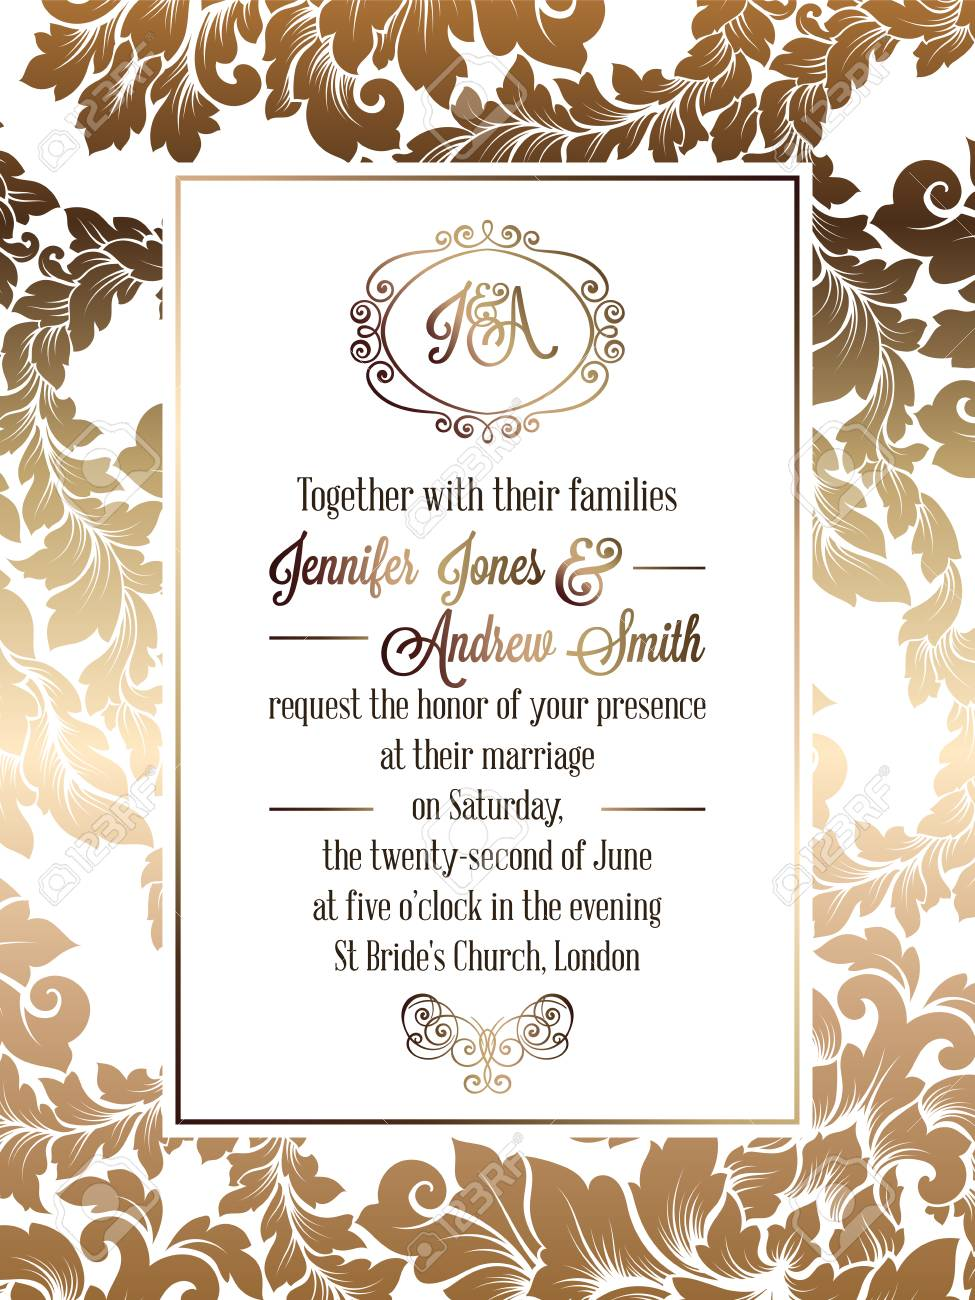 Vintage Baroque Style Wedding Invitation Card Template Elegant